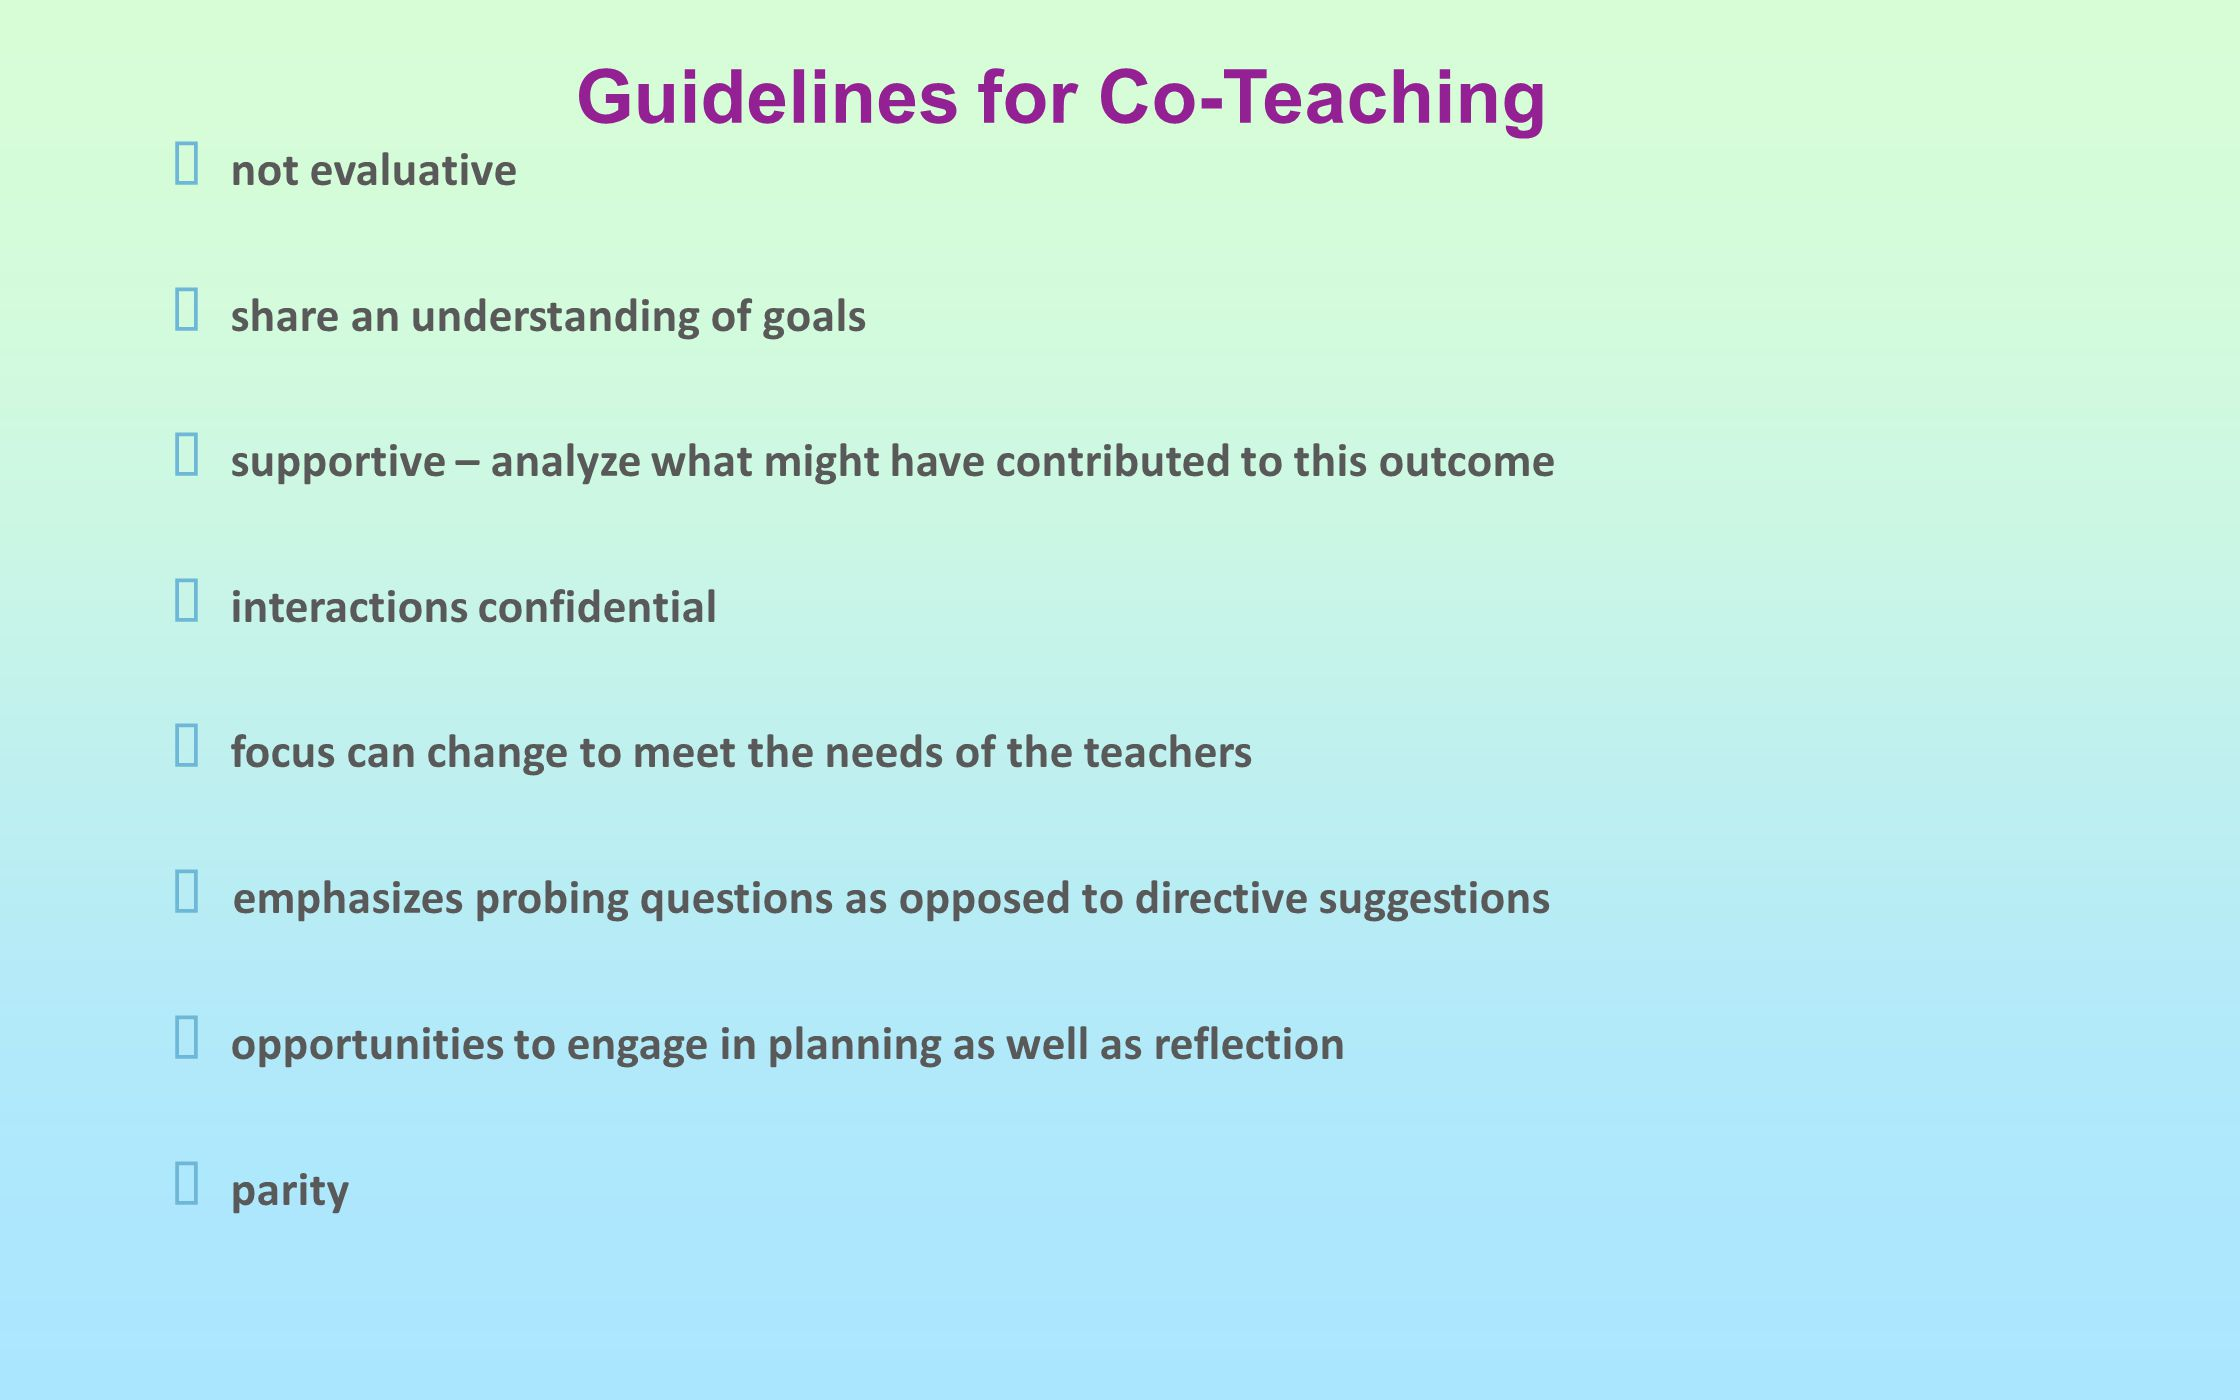 Guidelines for Co-Teaching